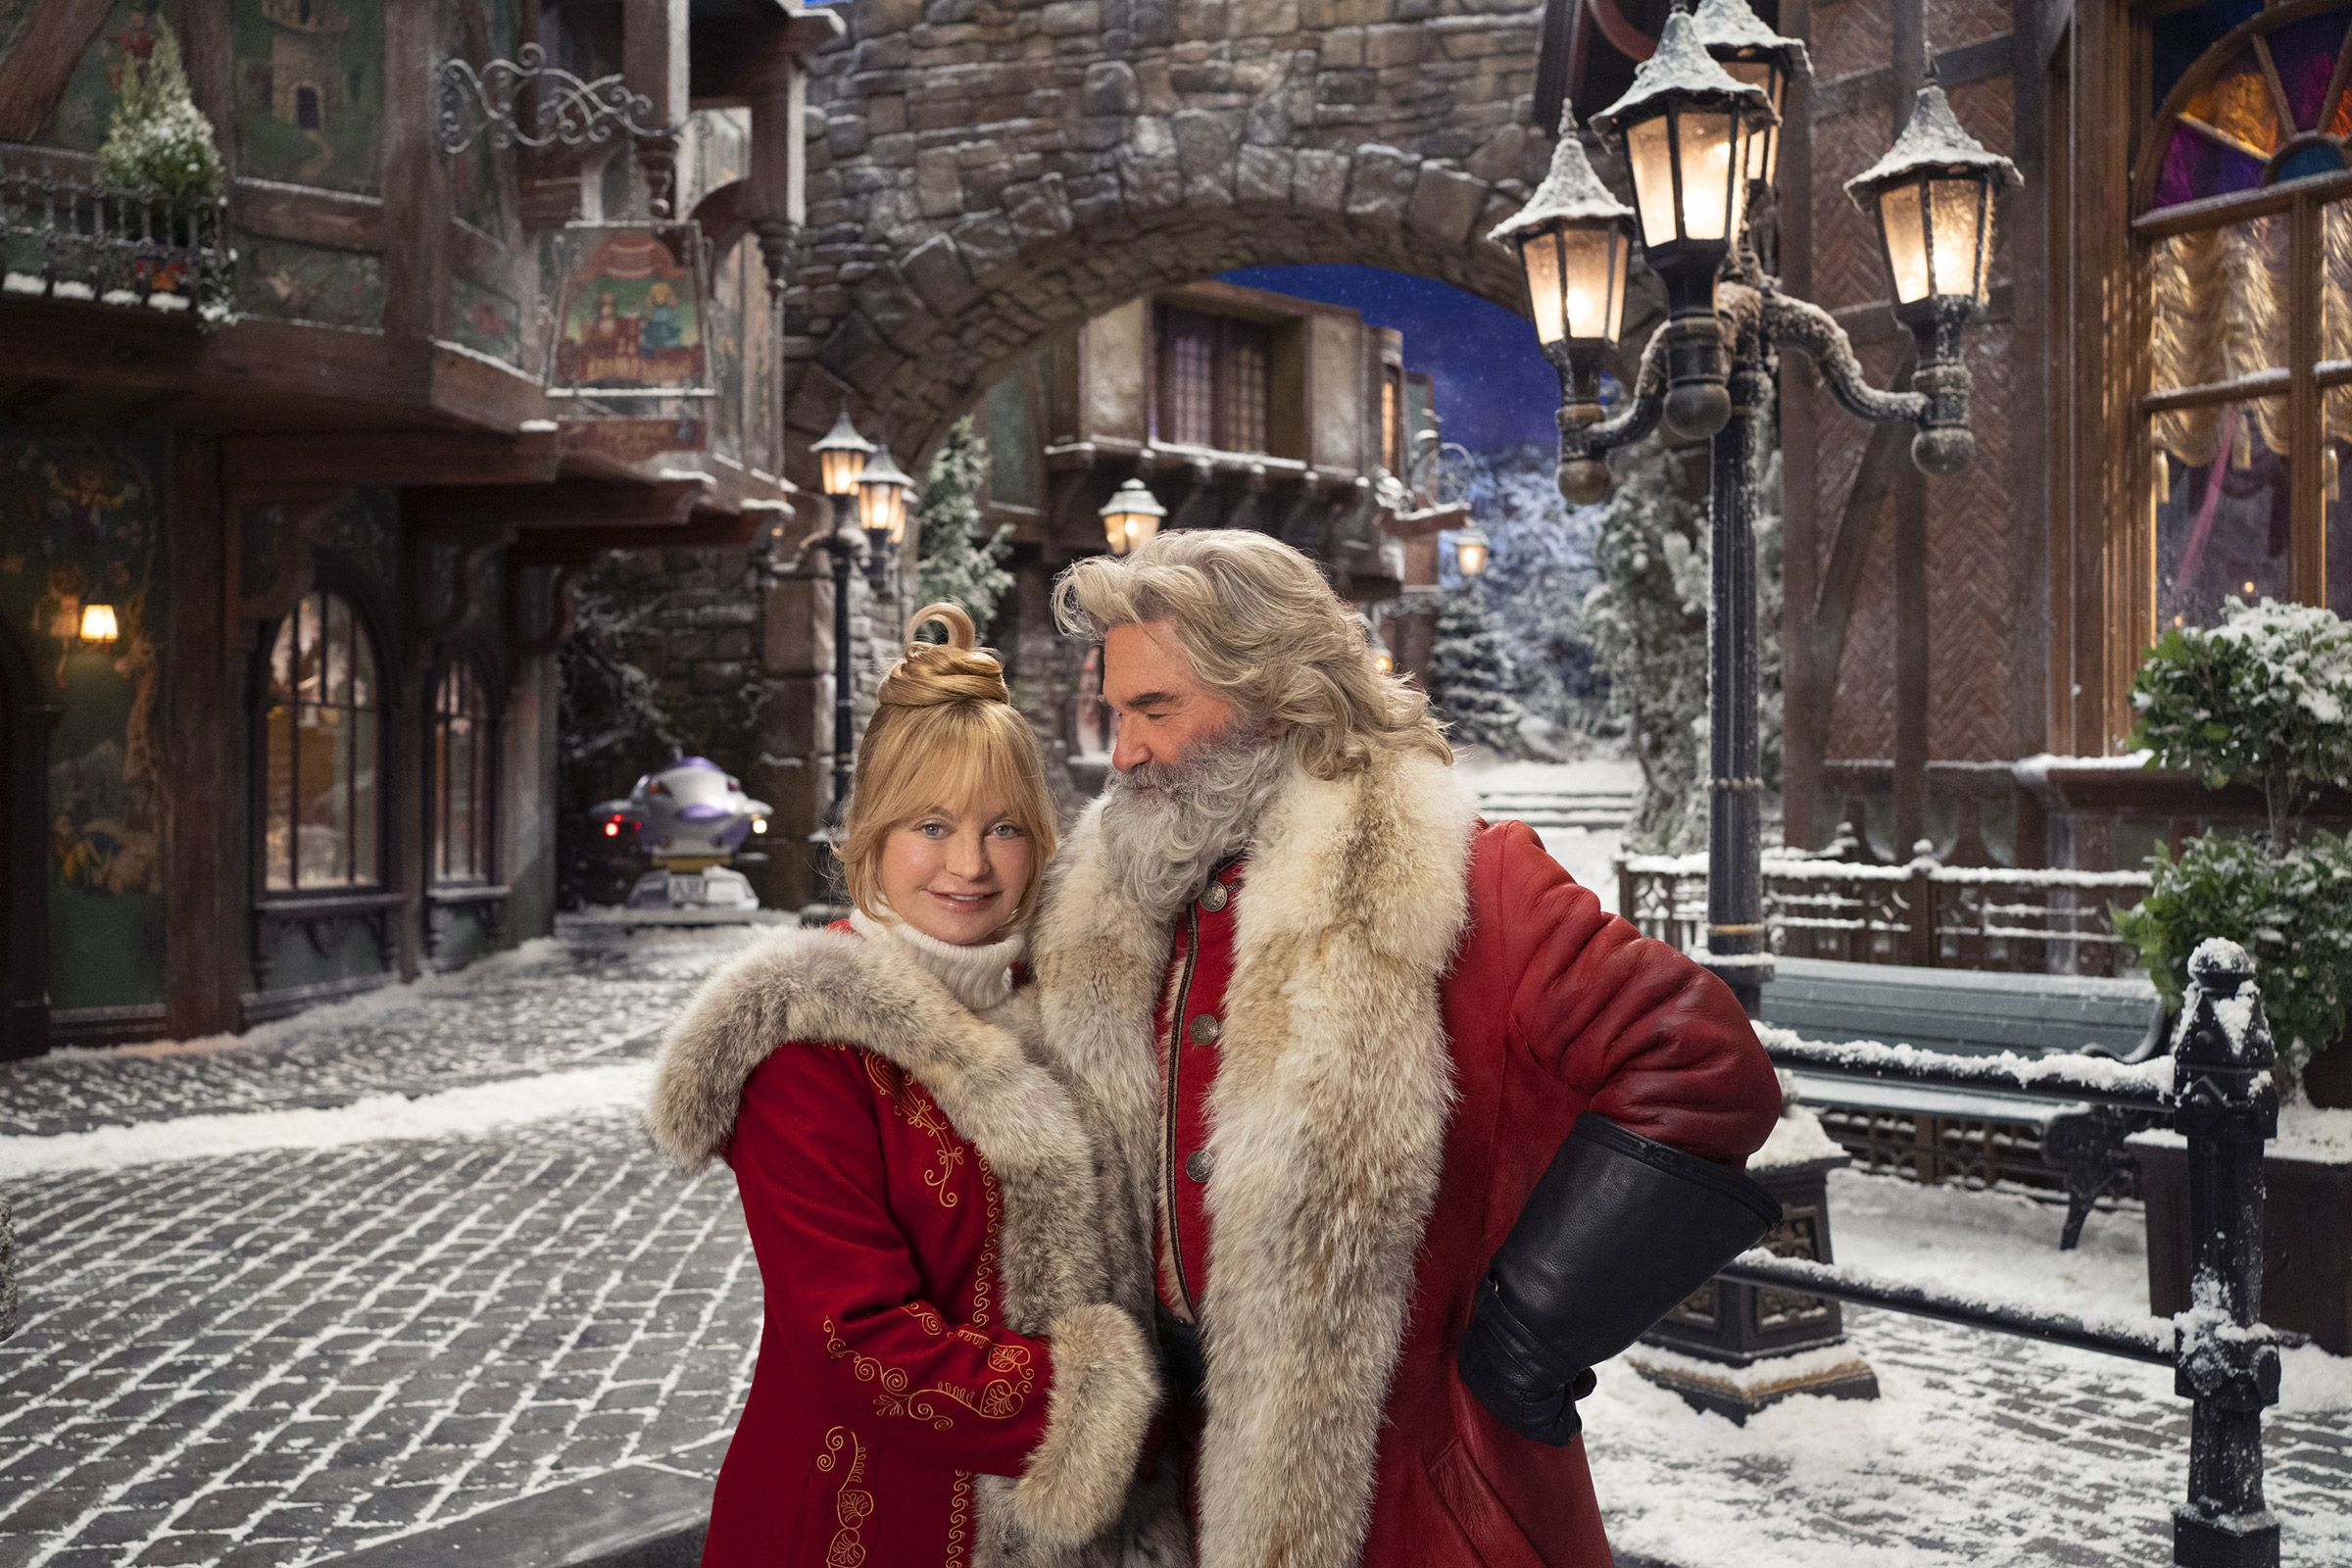 Kurt Russell And Goldie Hawn Have A Tremendous Amount Of Love In The Christmas Chronicles 2 Netflix Christmas Movies Holiday Movie Christmas Movies